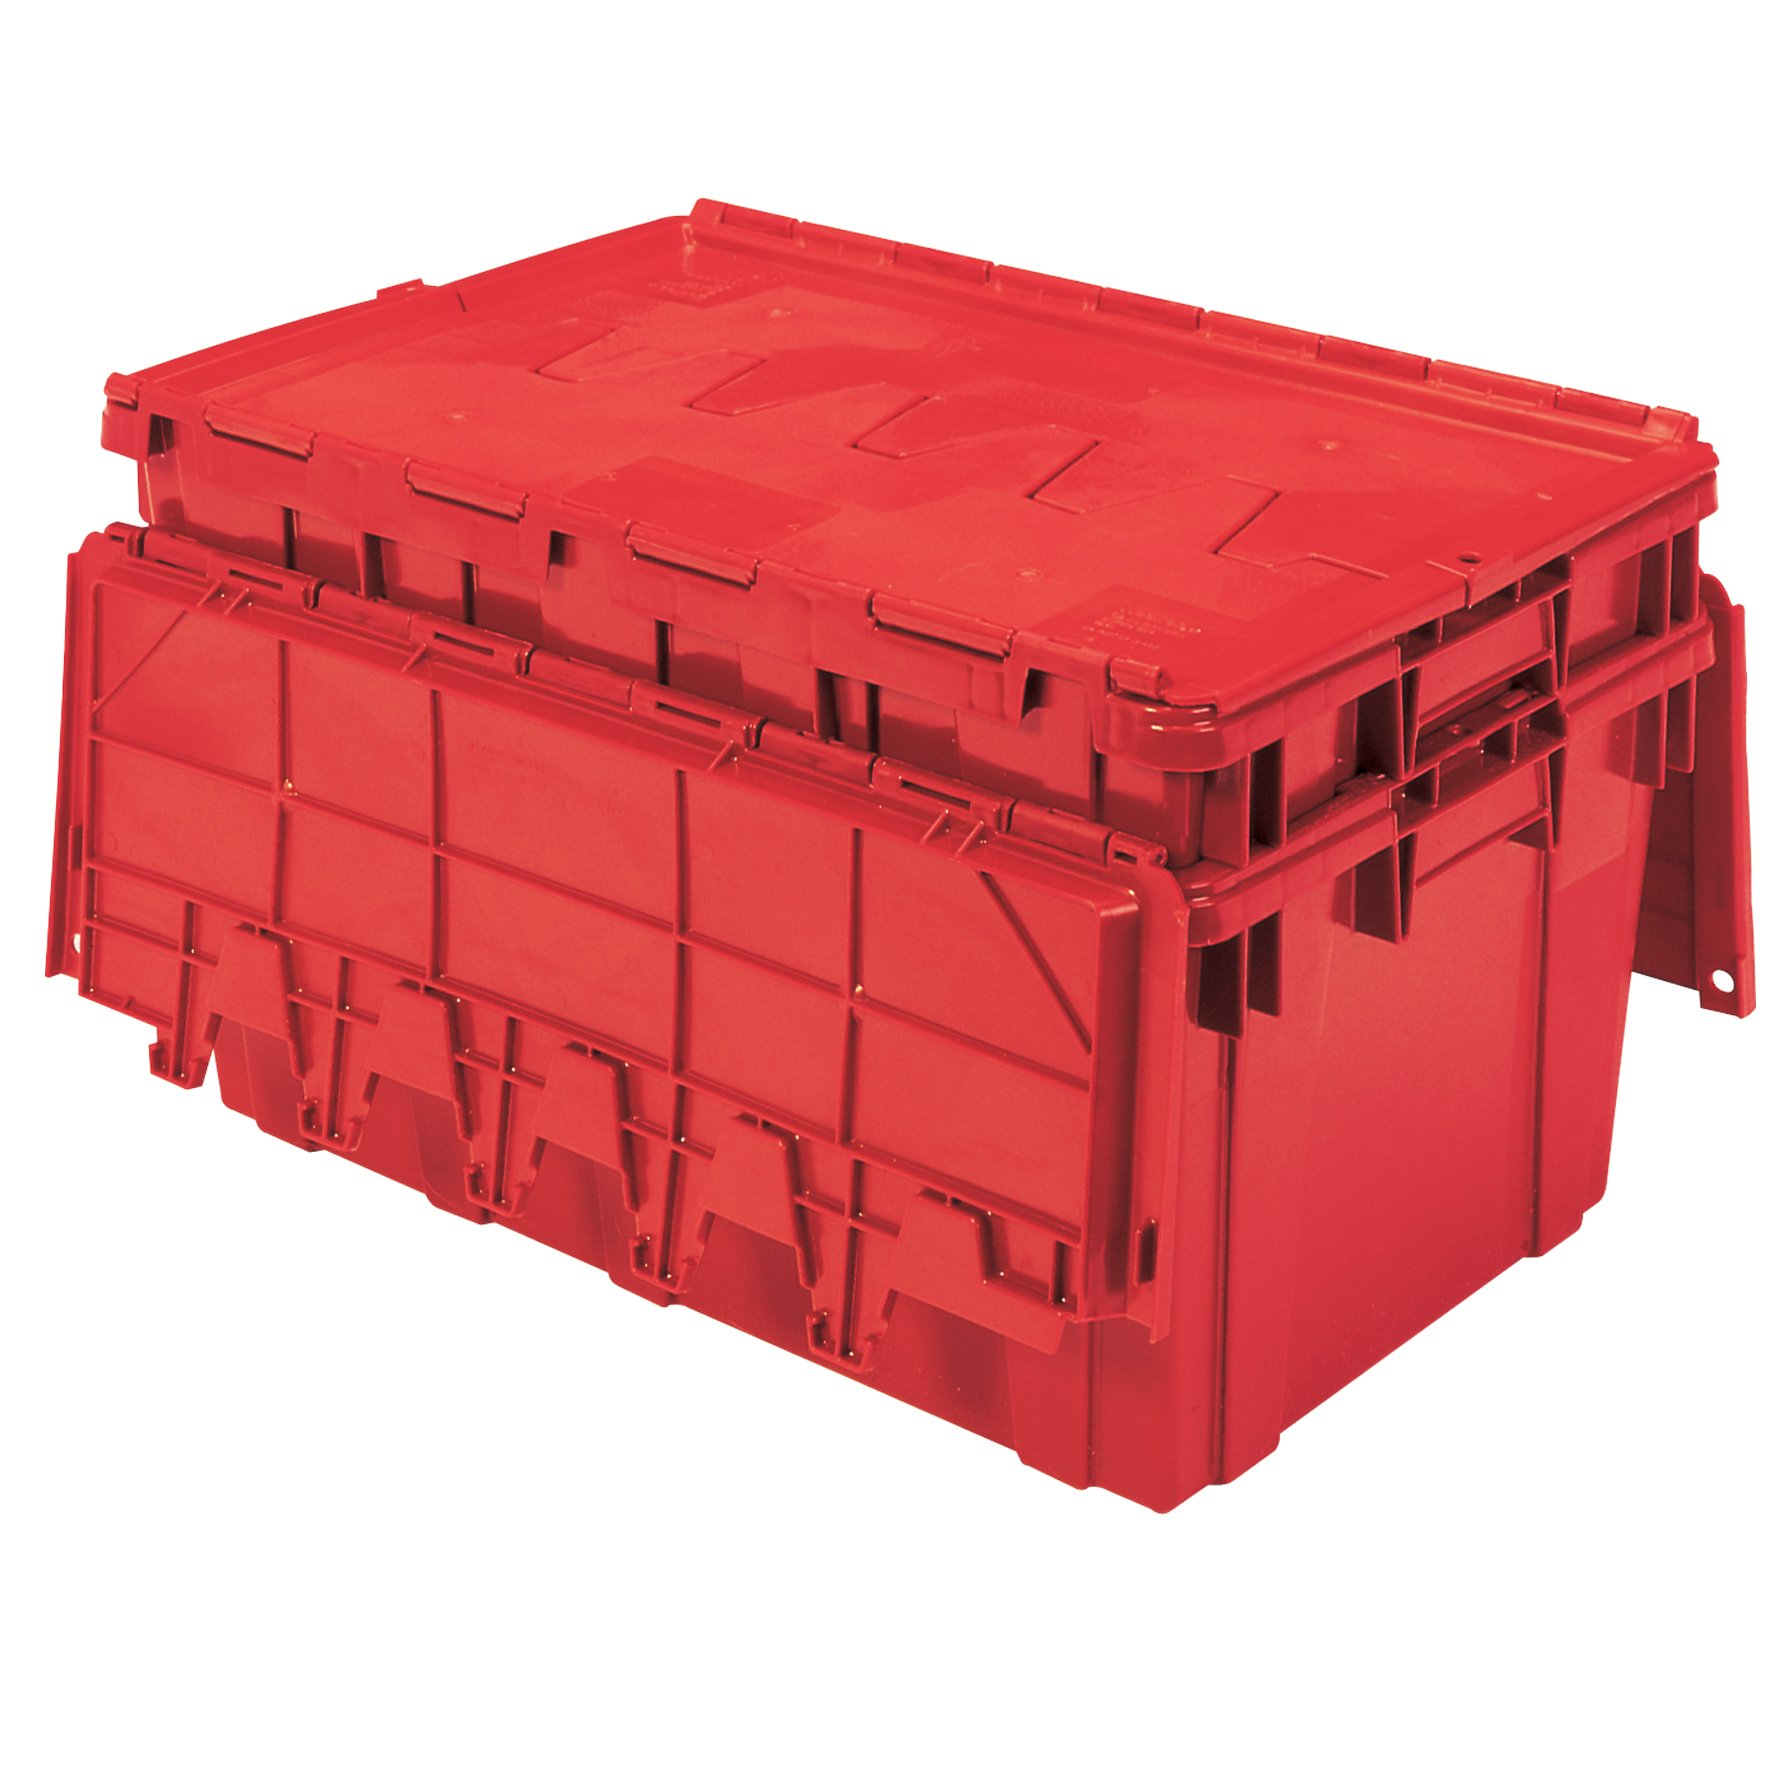 Buckhorn AR2717120202000 Attached Lid Flip Top Storage and Distribution Plastic Tote, 27-Inch x 17-Inch x 12-Inch, Red by Buckhorn